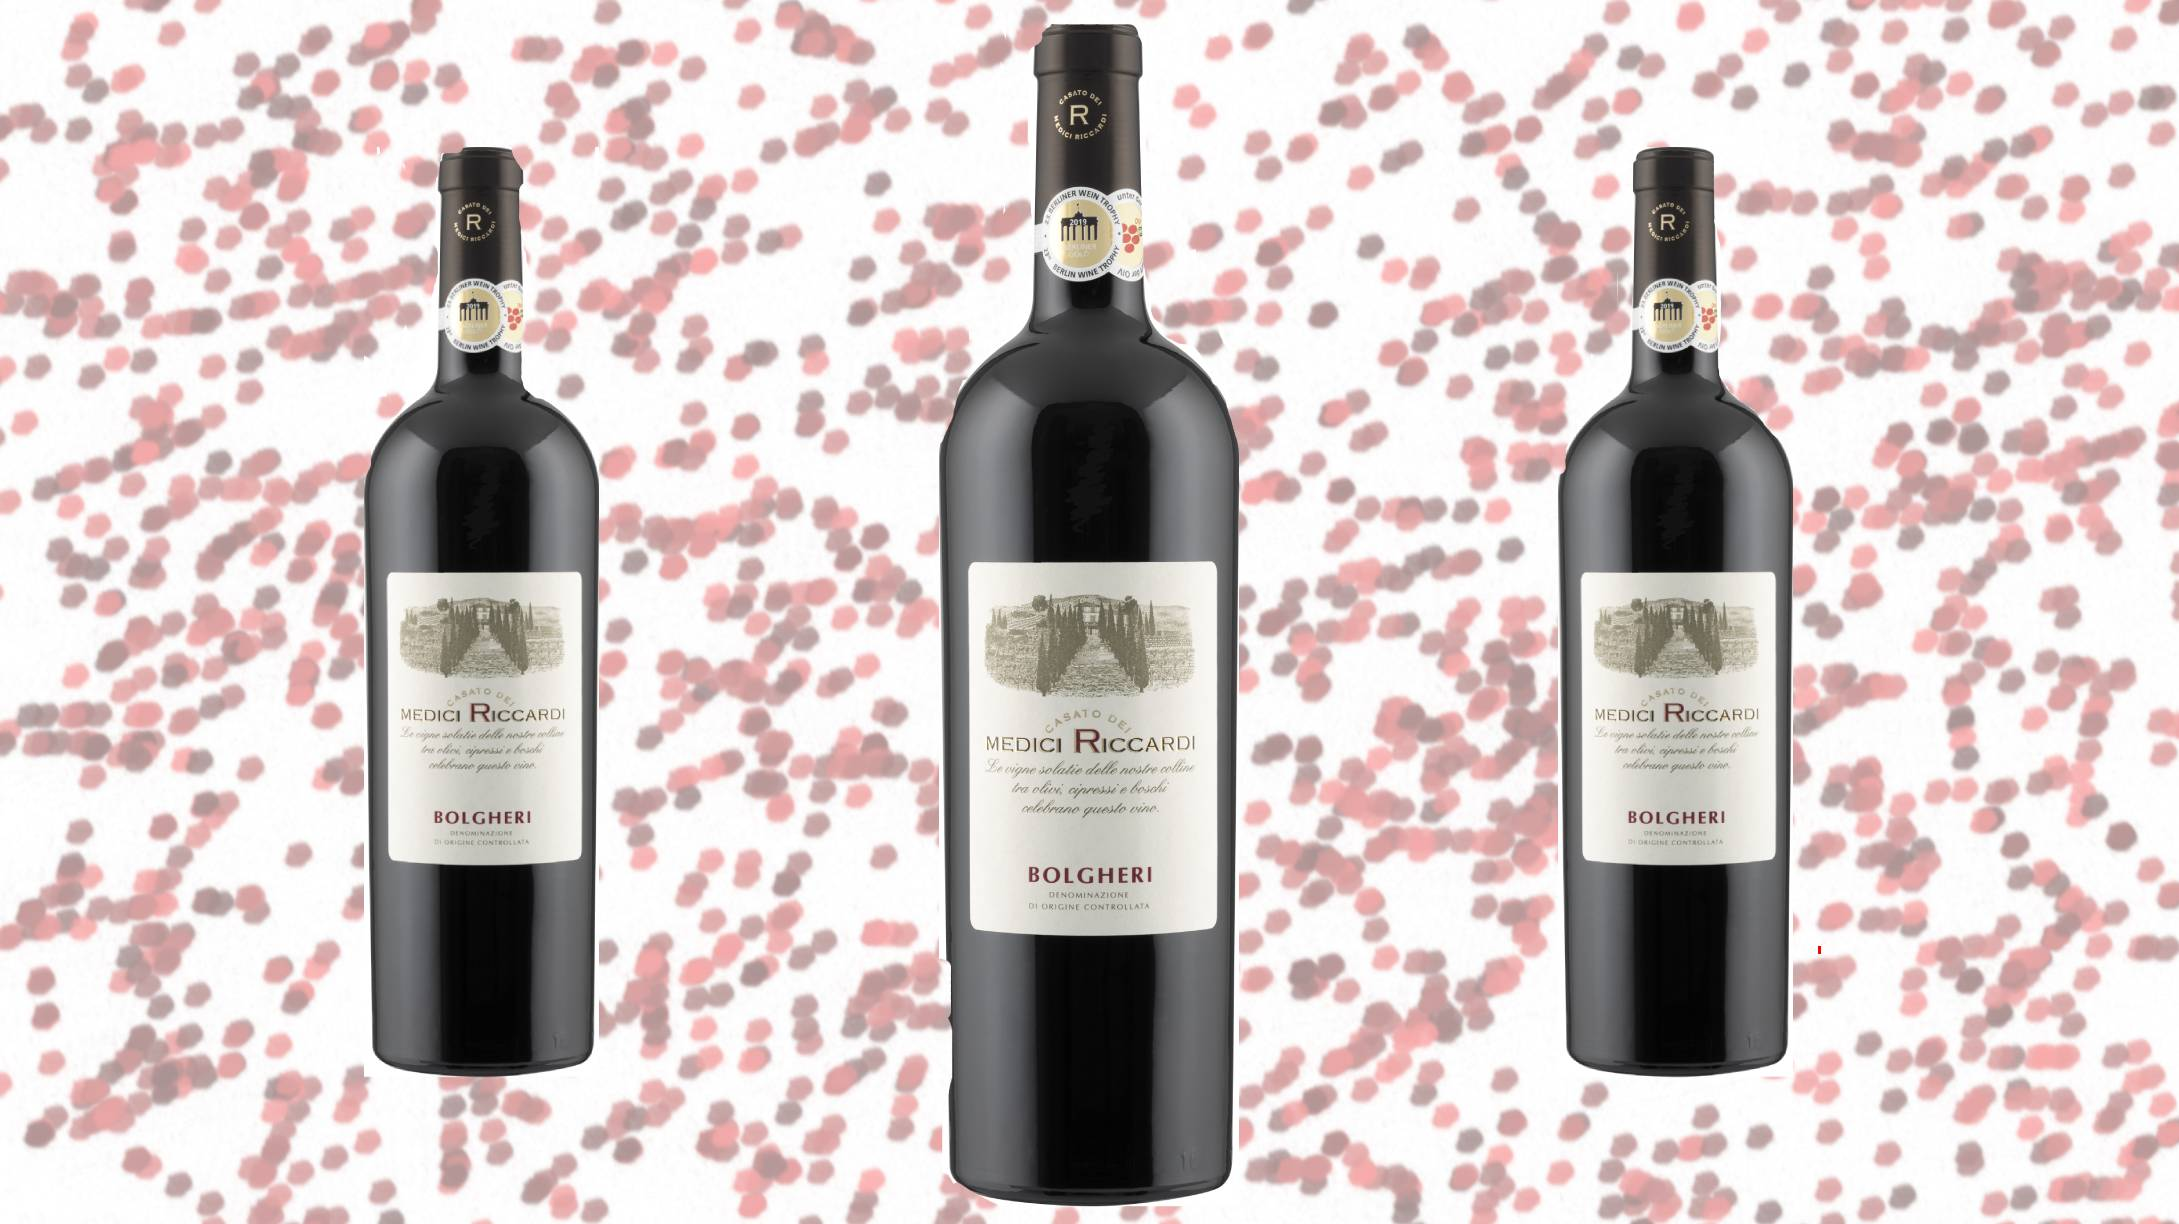 This super Tuscan wine that can sell for HUNDREDS costs £13.99 at Lidl